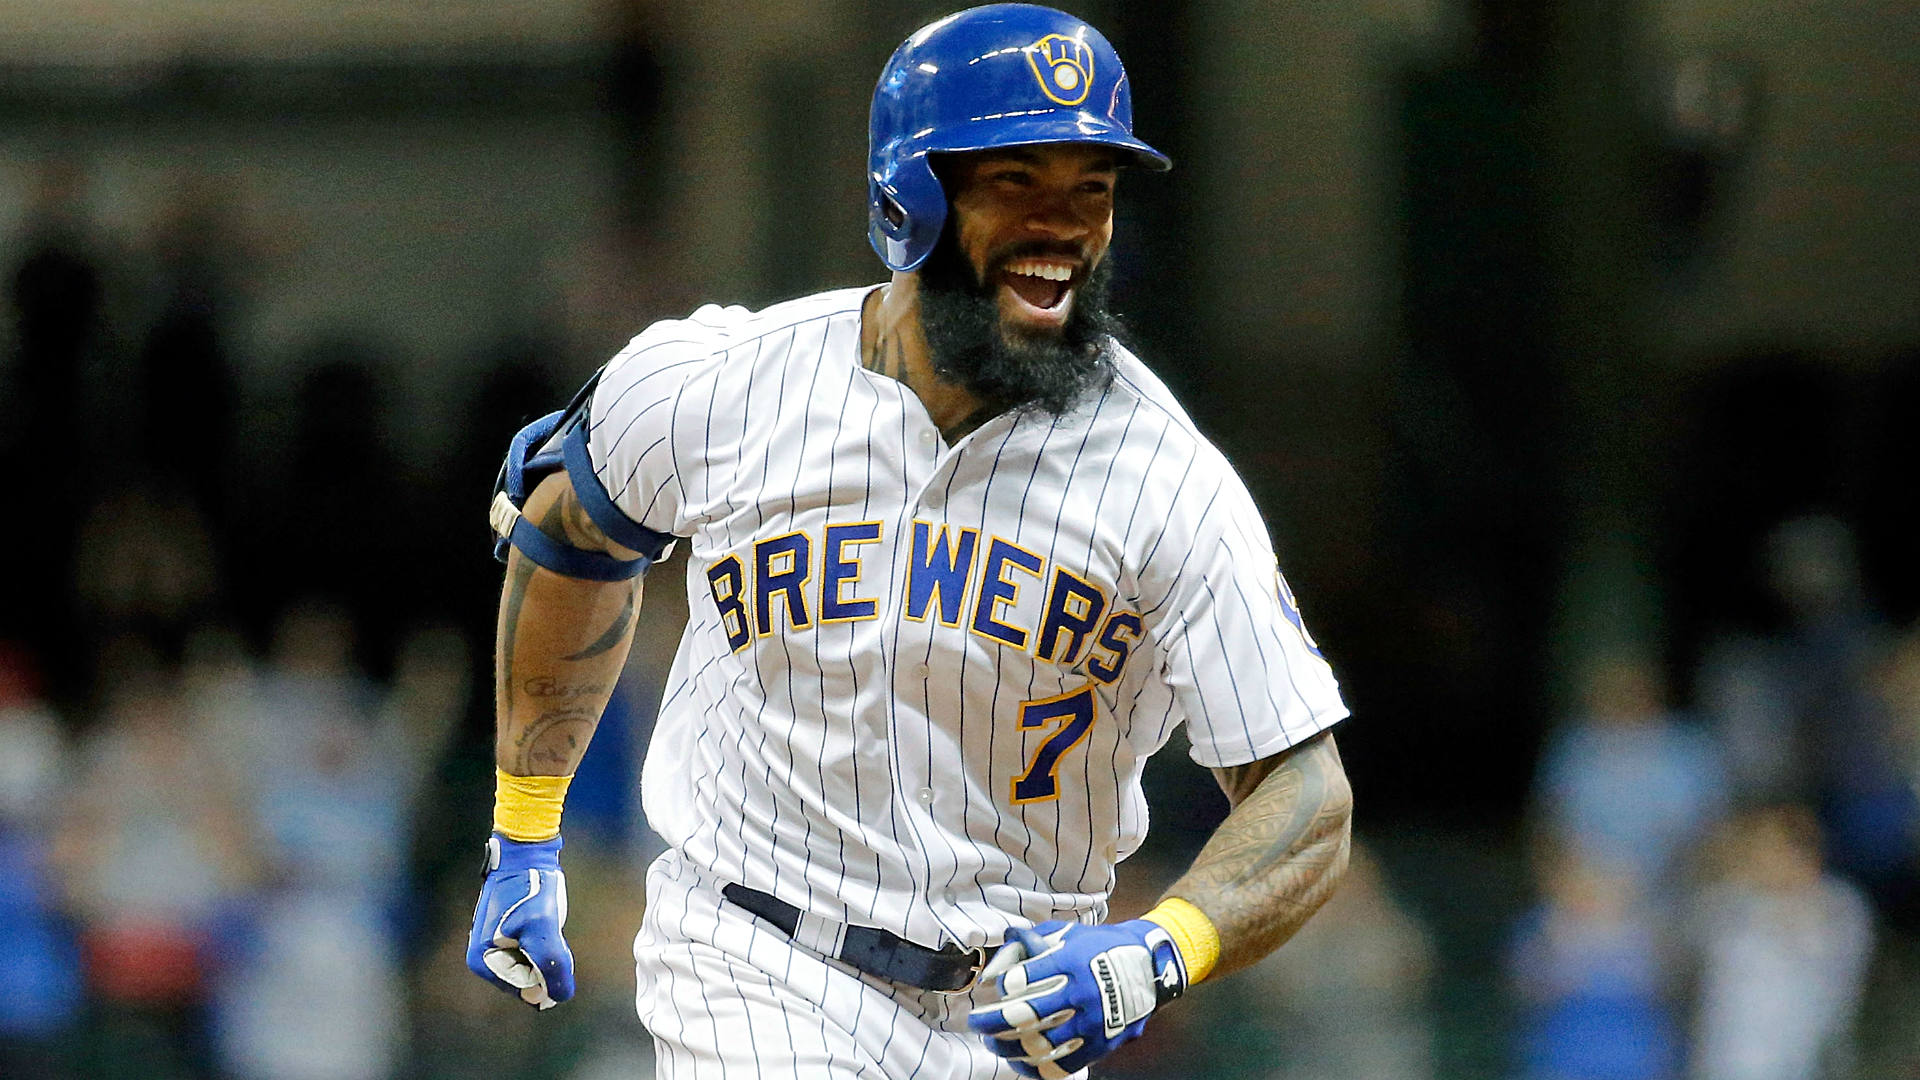 Can Eric Thames provide some lefty pop for the Yankees?